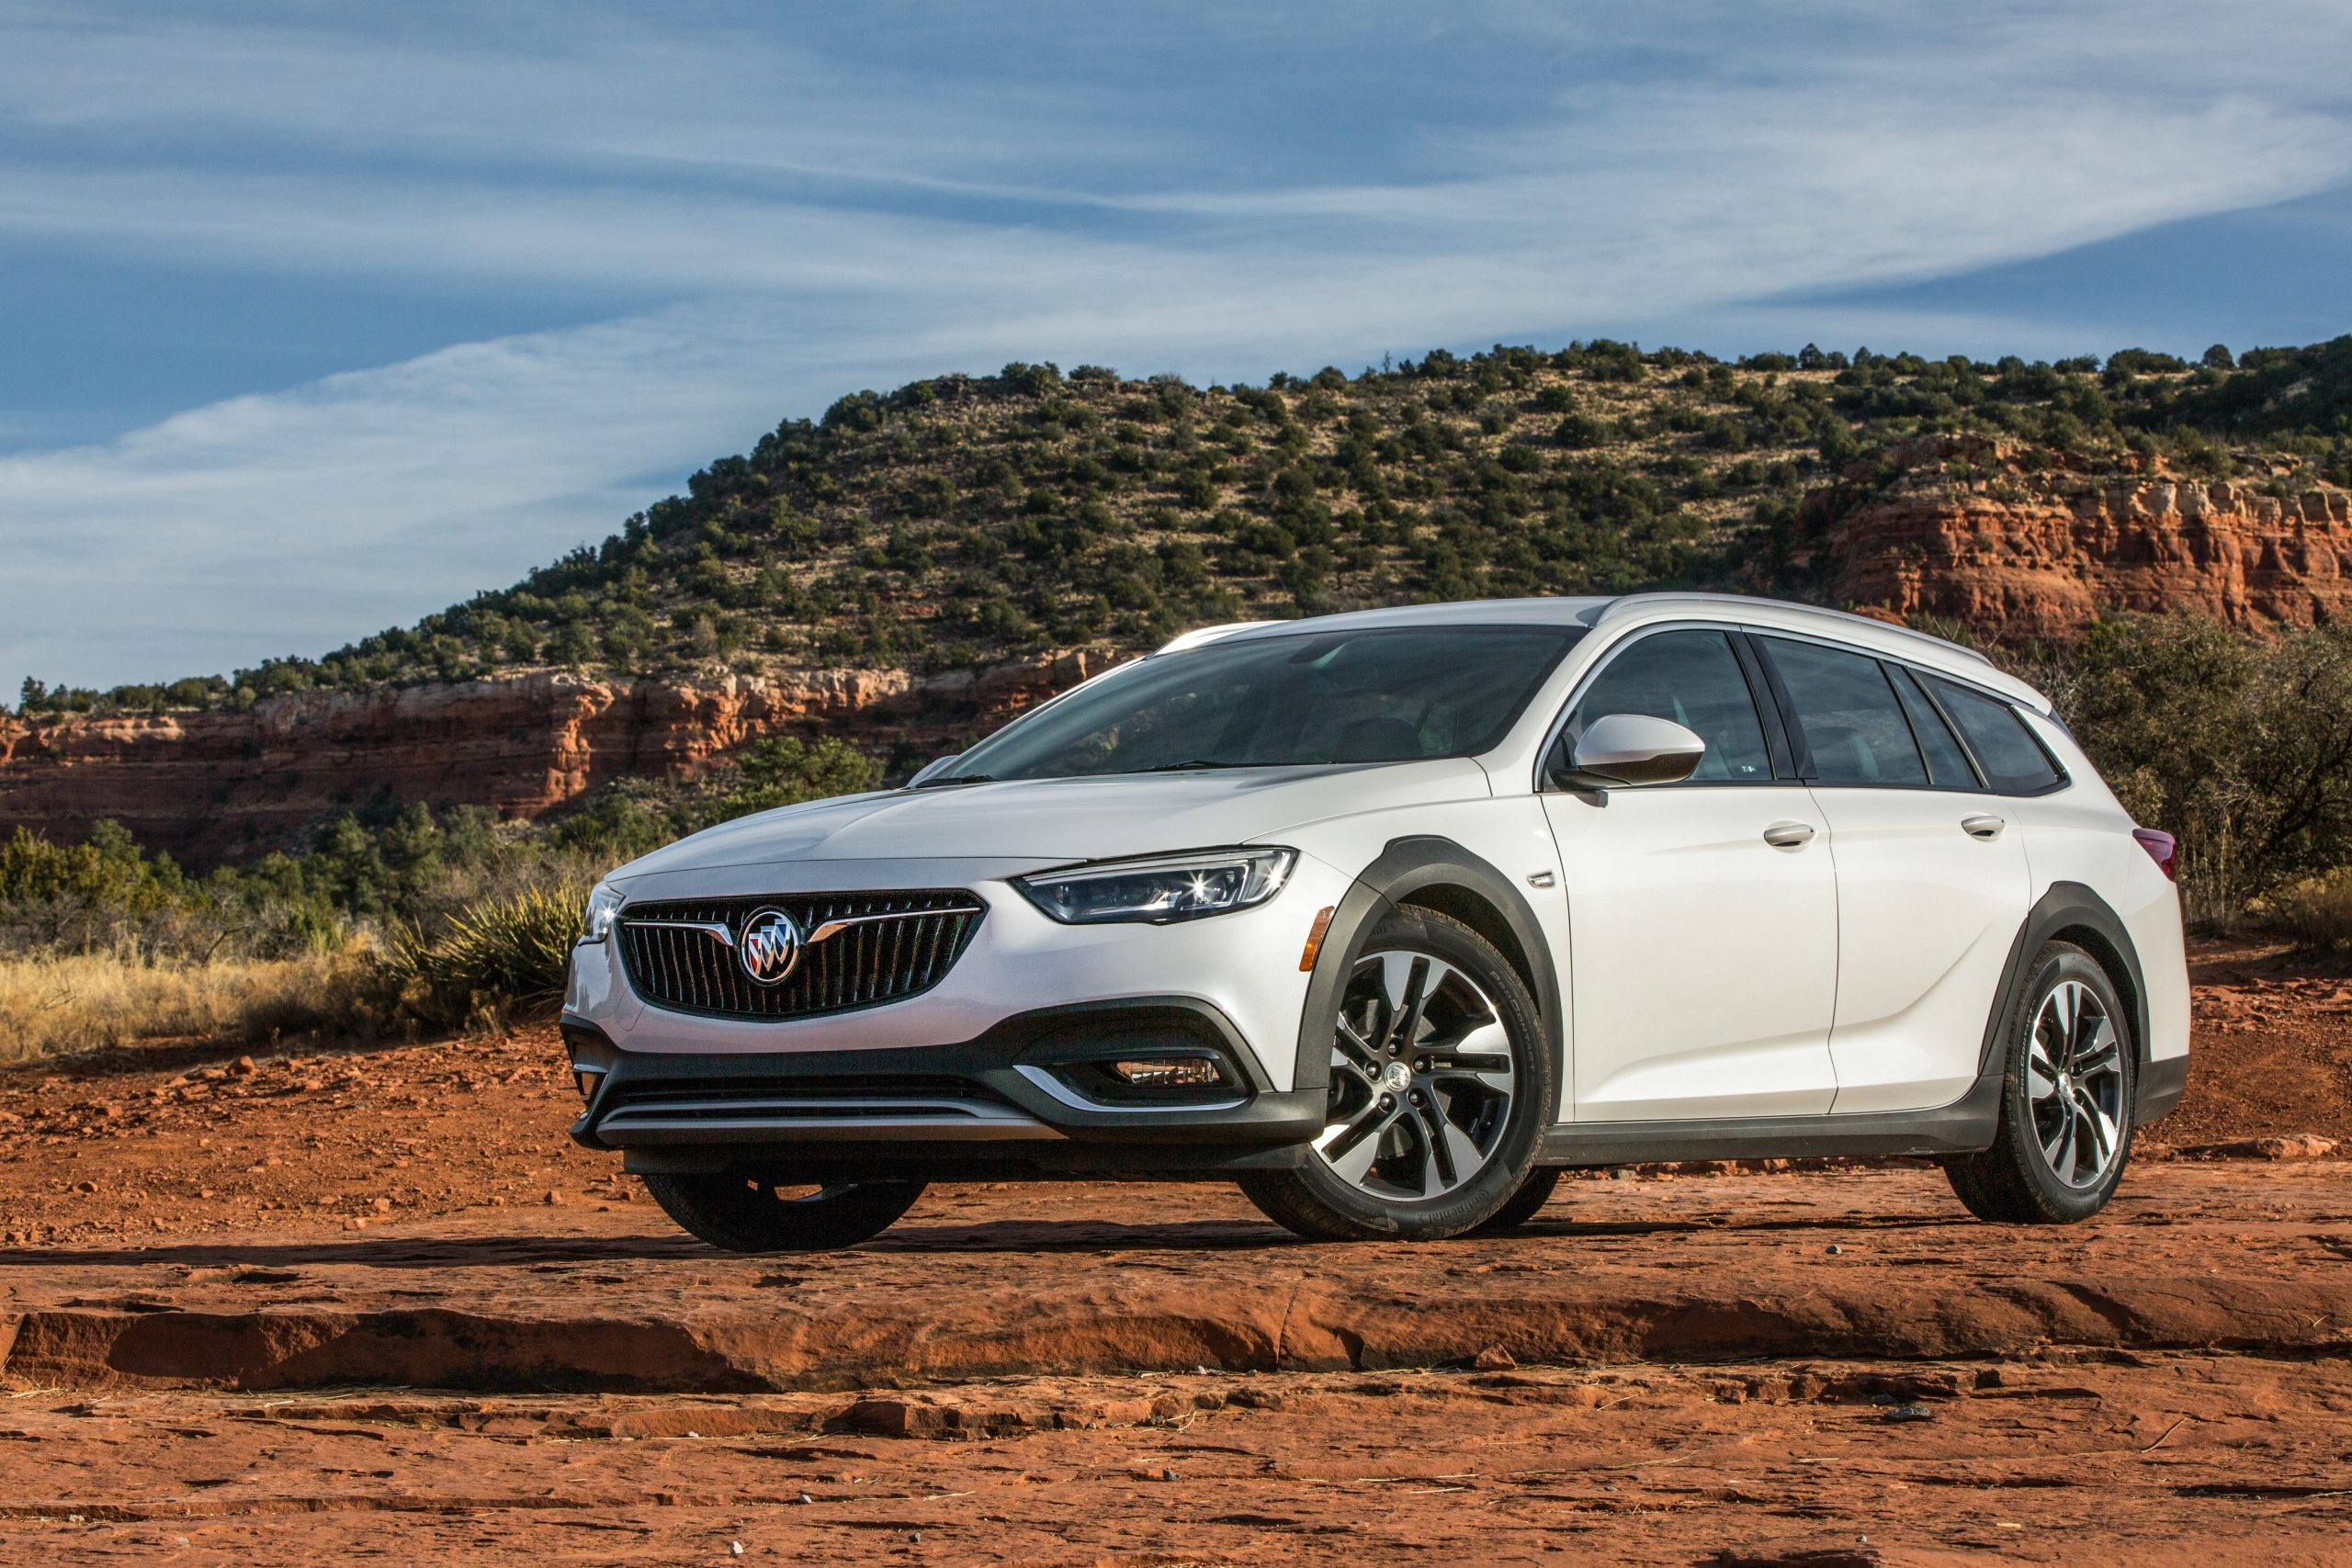 2018 Buick Regal Tourx Second Take: King Of The Wagon 2022 Buick Regal Tourx Price, Lease, Awd